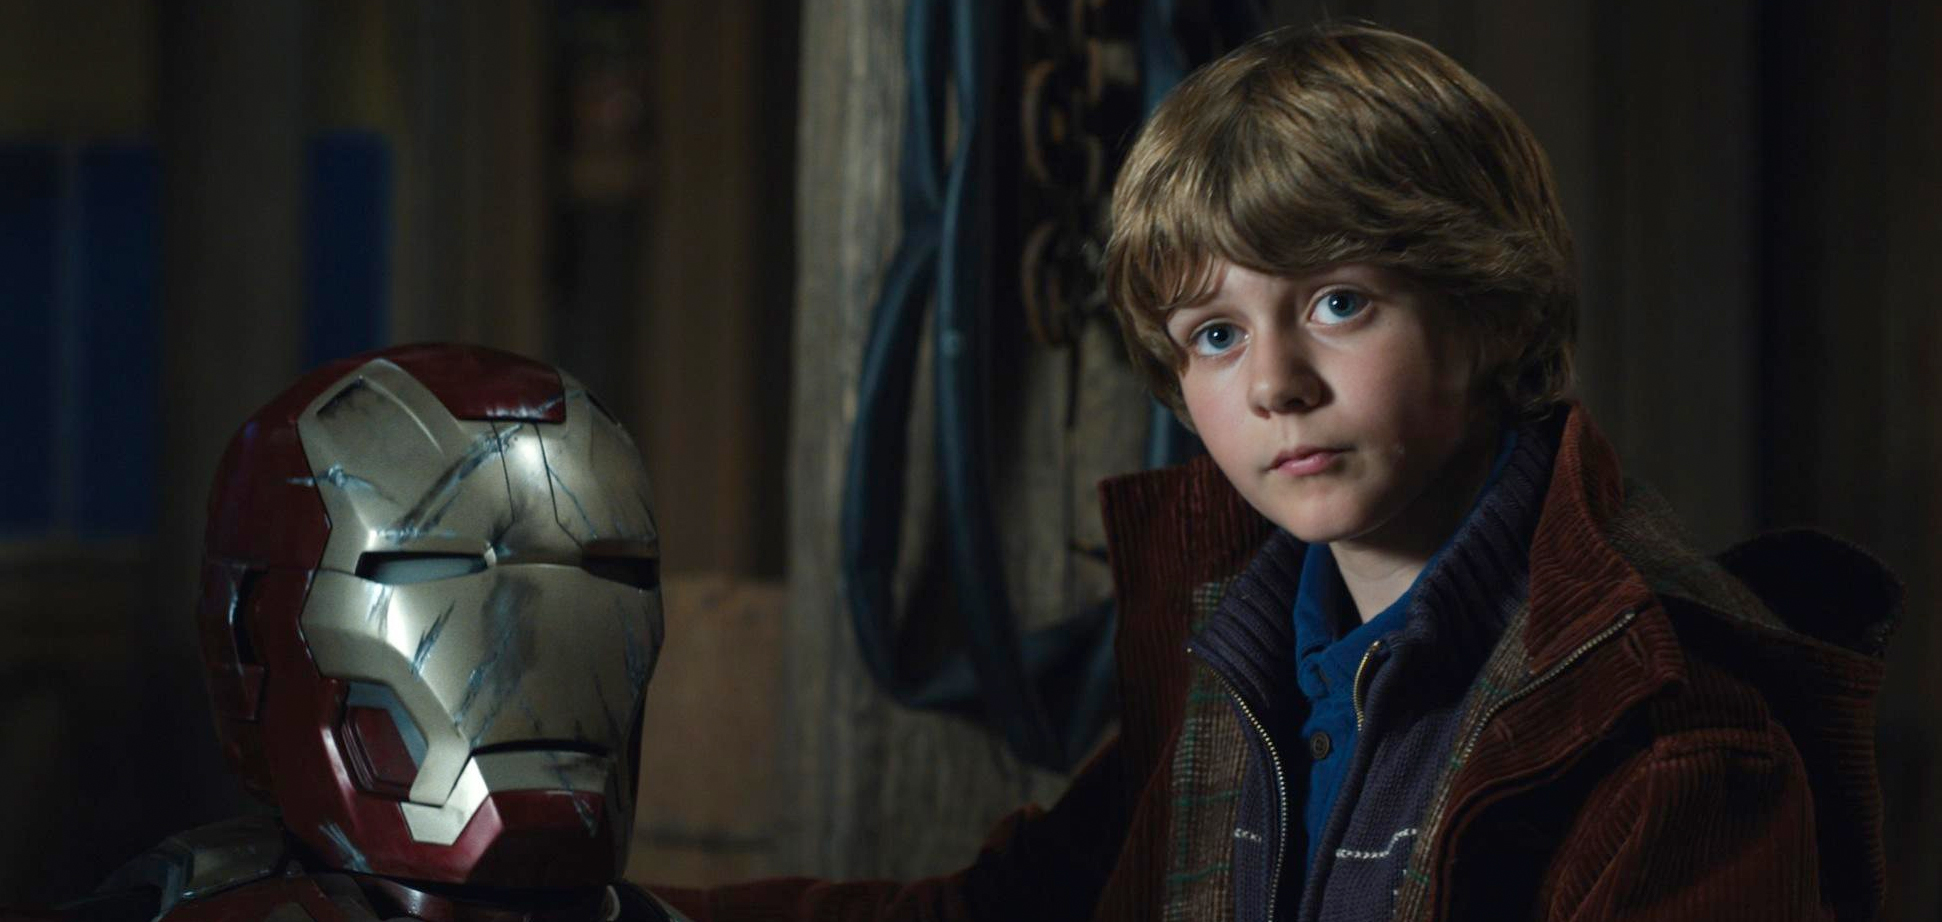 avengers 4 cast adds iron man 3 whiz kid ty simpkins